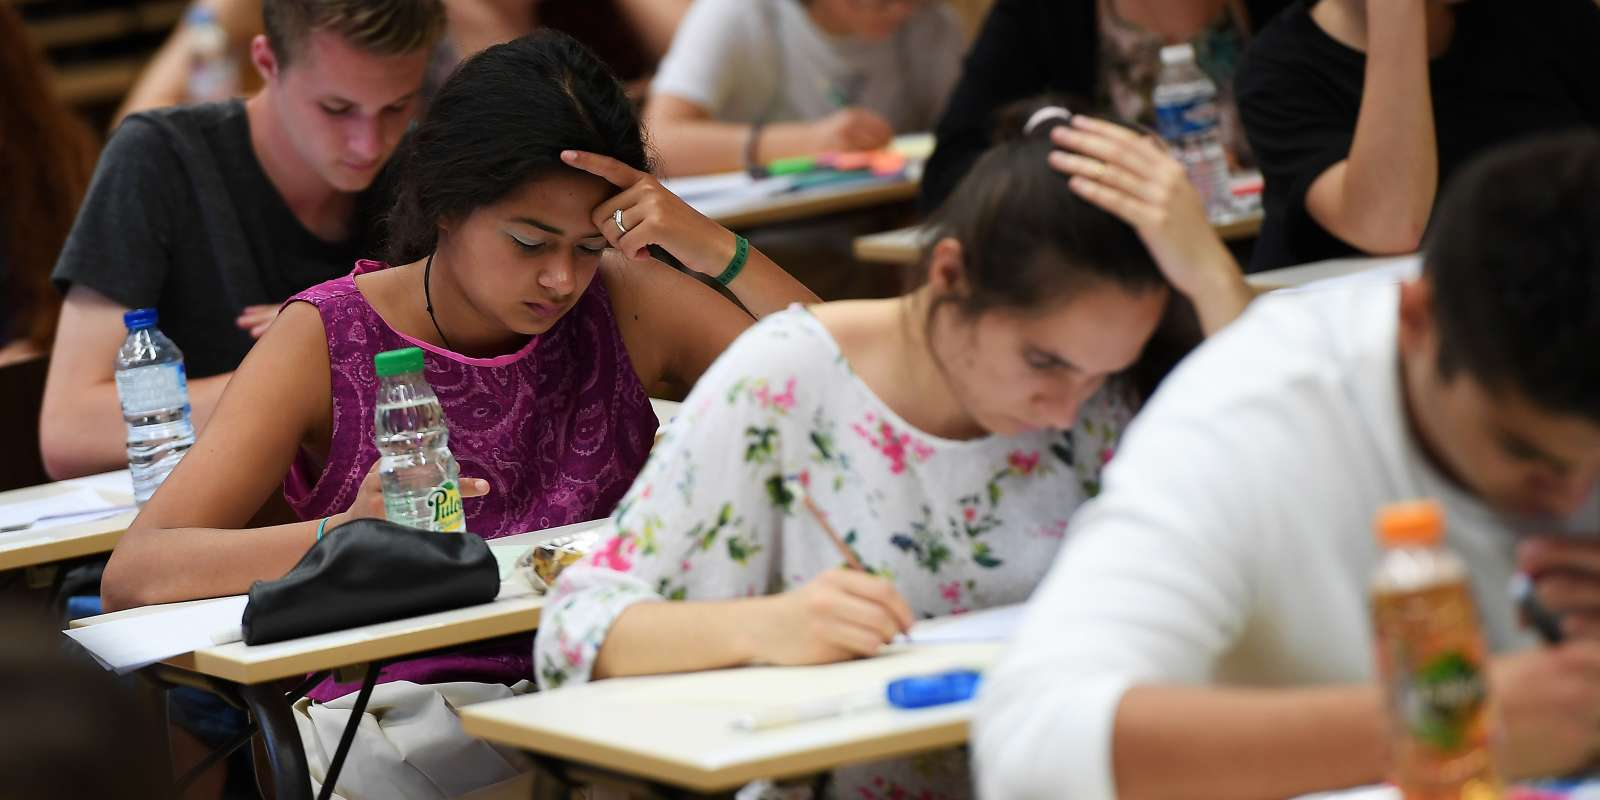 High school students take the philosophy exam, the first test session of the 2017 baccalaureate (high school graduation exam) on June 15, 2017 at the Fustel de Coulanges high school in Strasbourg, eastern France. A total of 520.000 Students of general and technological graduating classes are registered to take their written baccalaureat exams at over 4 400 examination centres across France between June 15-June 22, 2017.